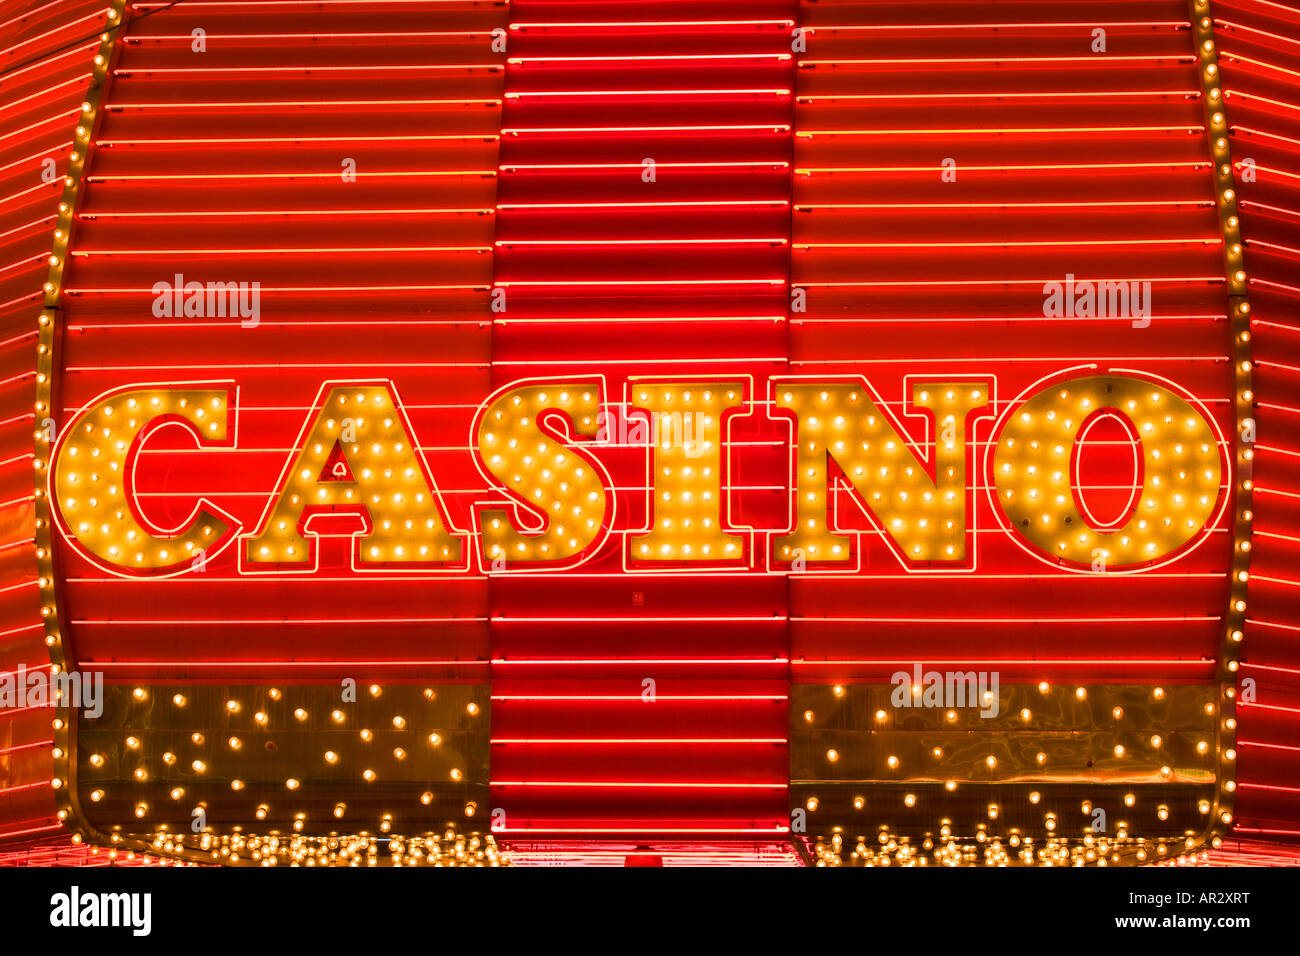 Casino neon sign downtown Las Vegas Nevada - Stock Image